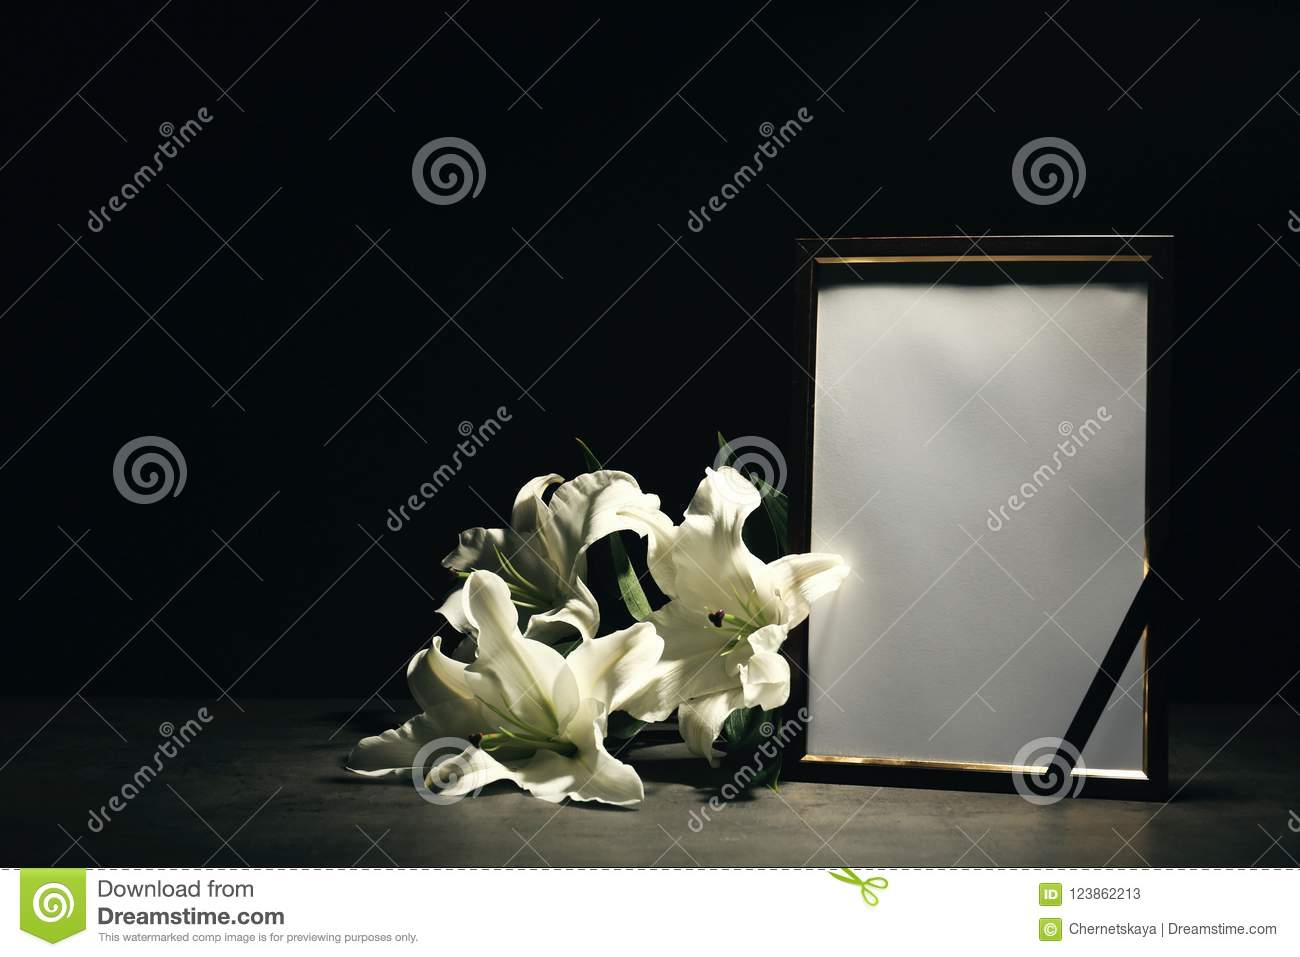 Funeral photo frame and lily flowers